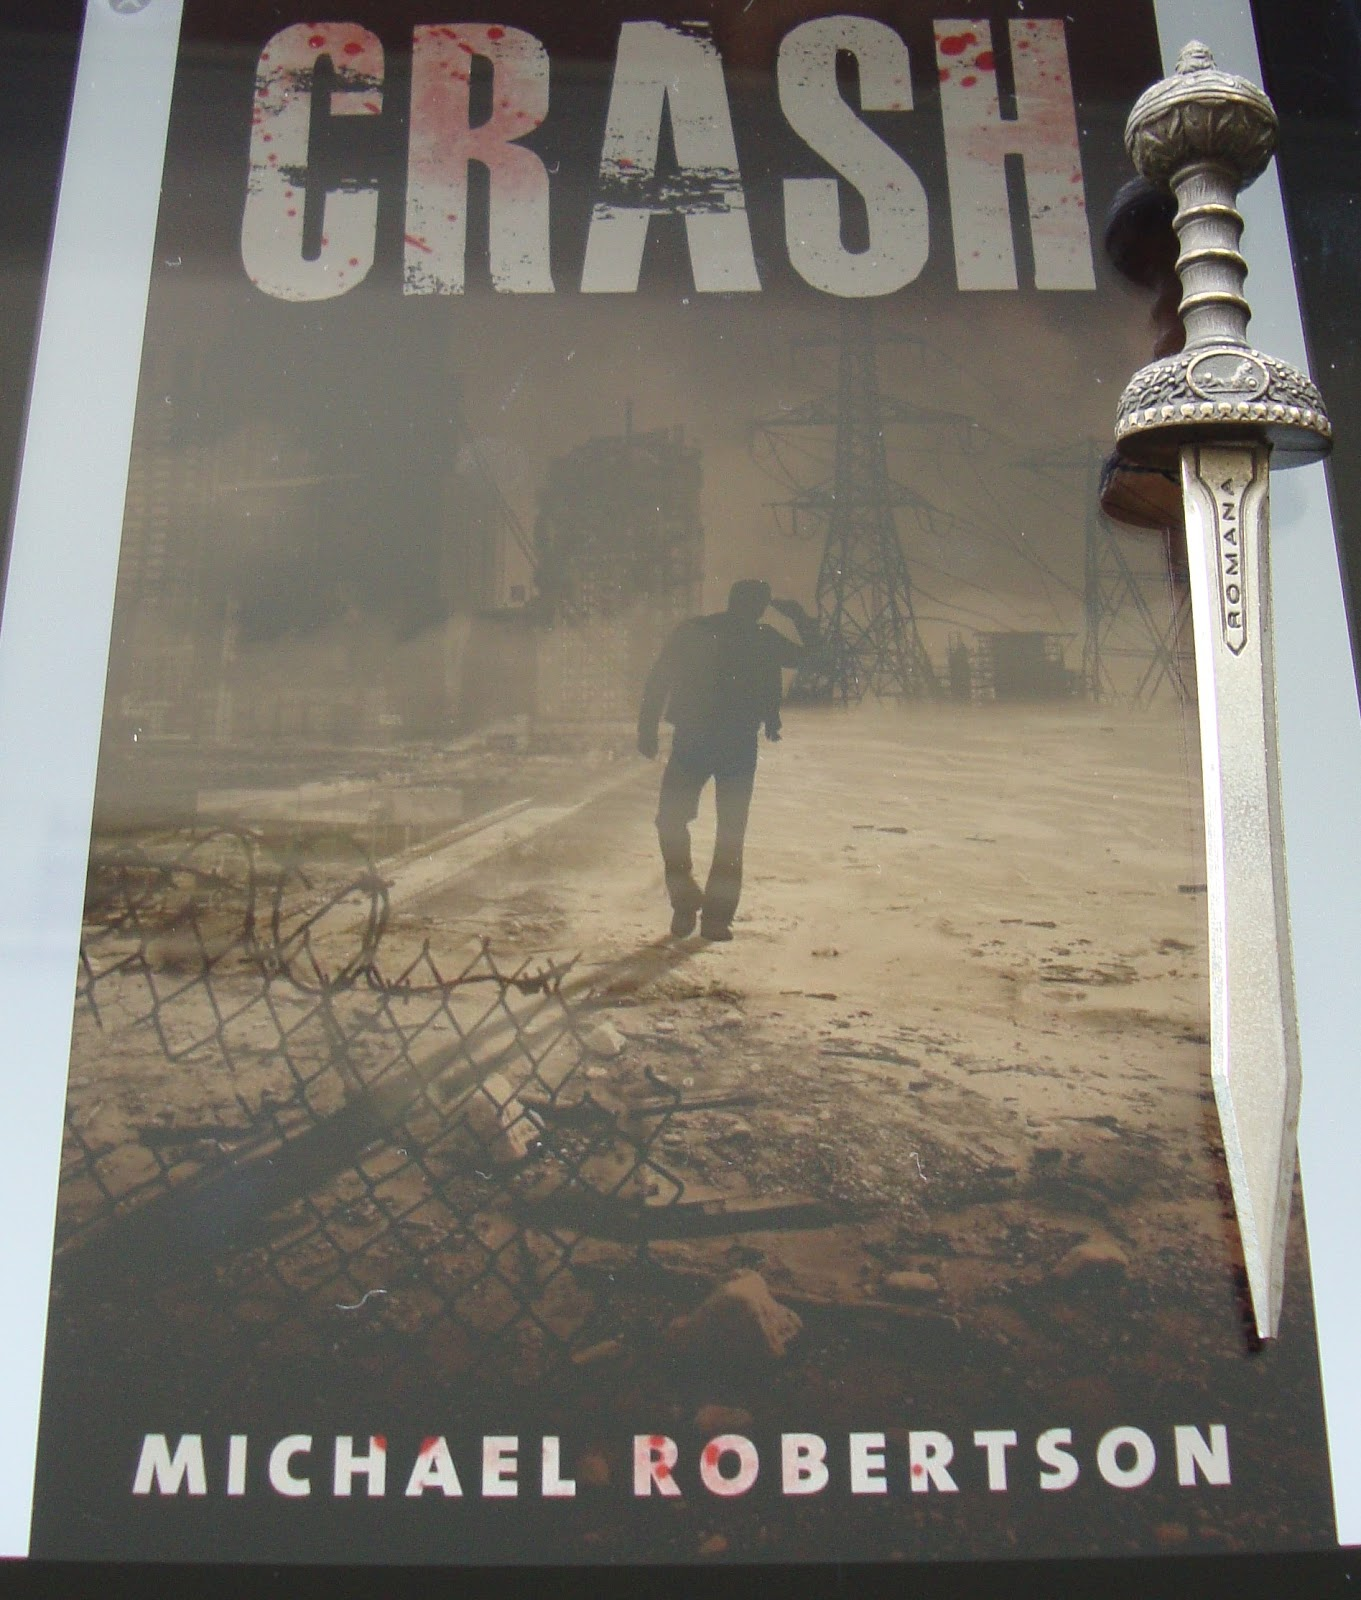 Crash Libro Libros De Olethros Crash Michael Robertson